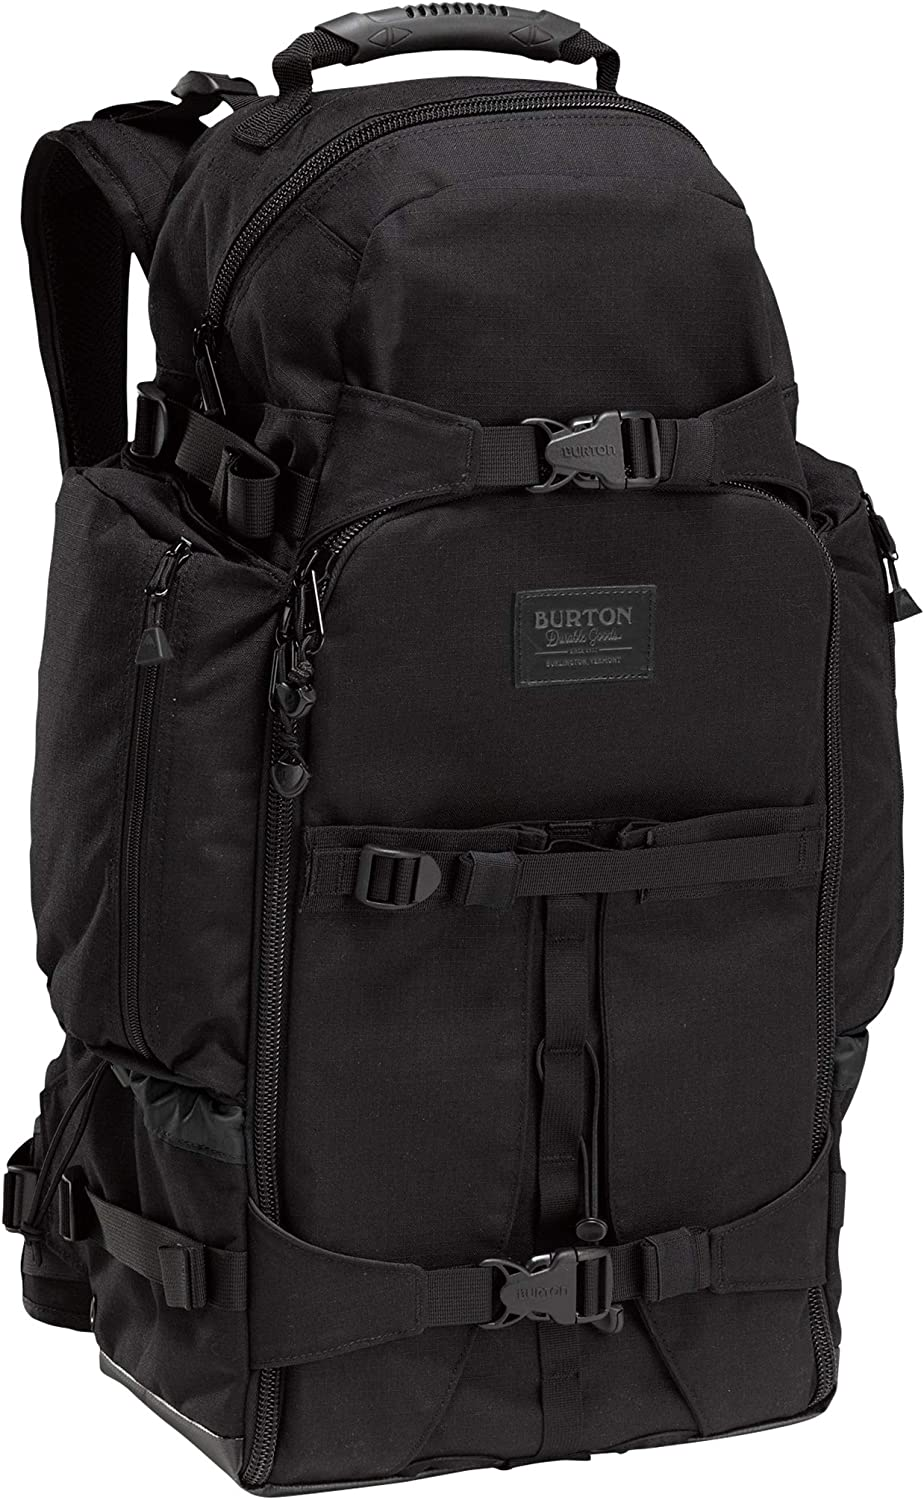 Burton F-stop Camera Backpack, Padded Storage, Waist Harness, Tripod Gear Storage